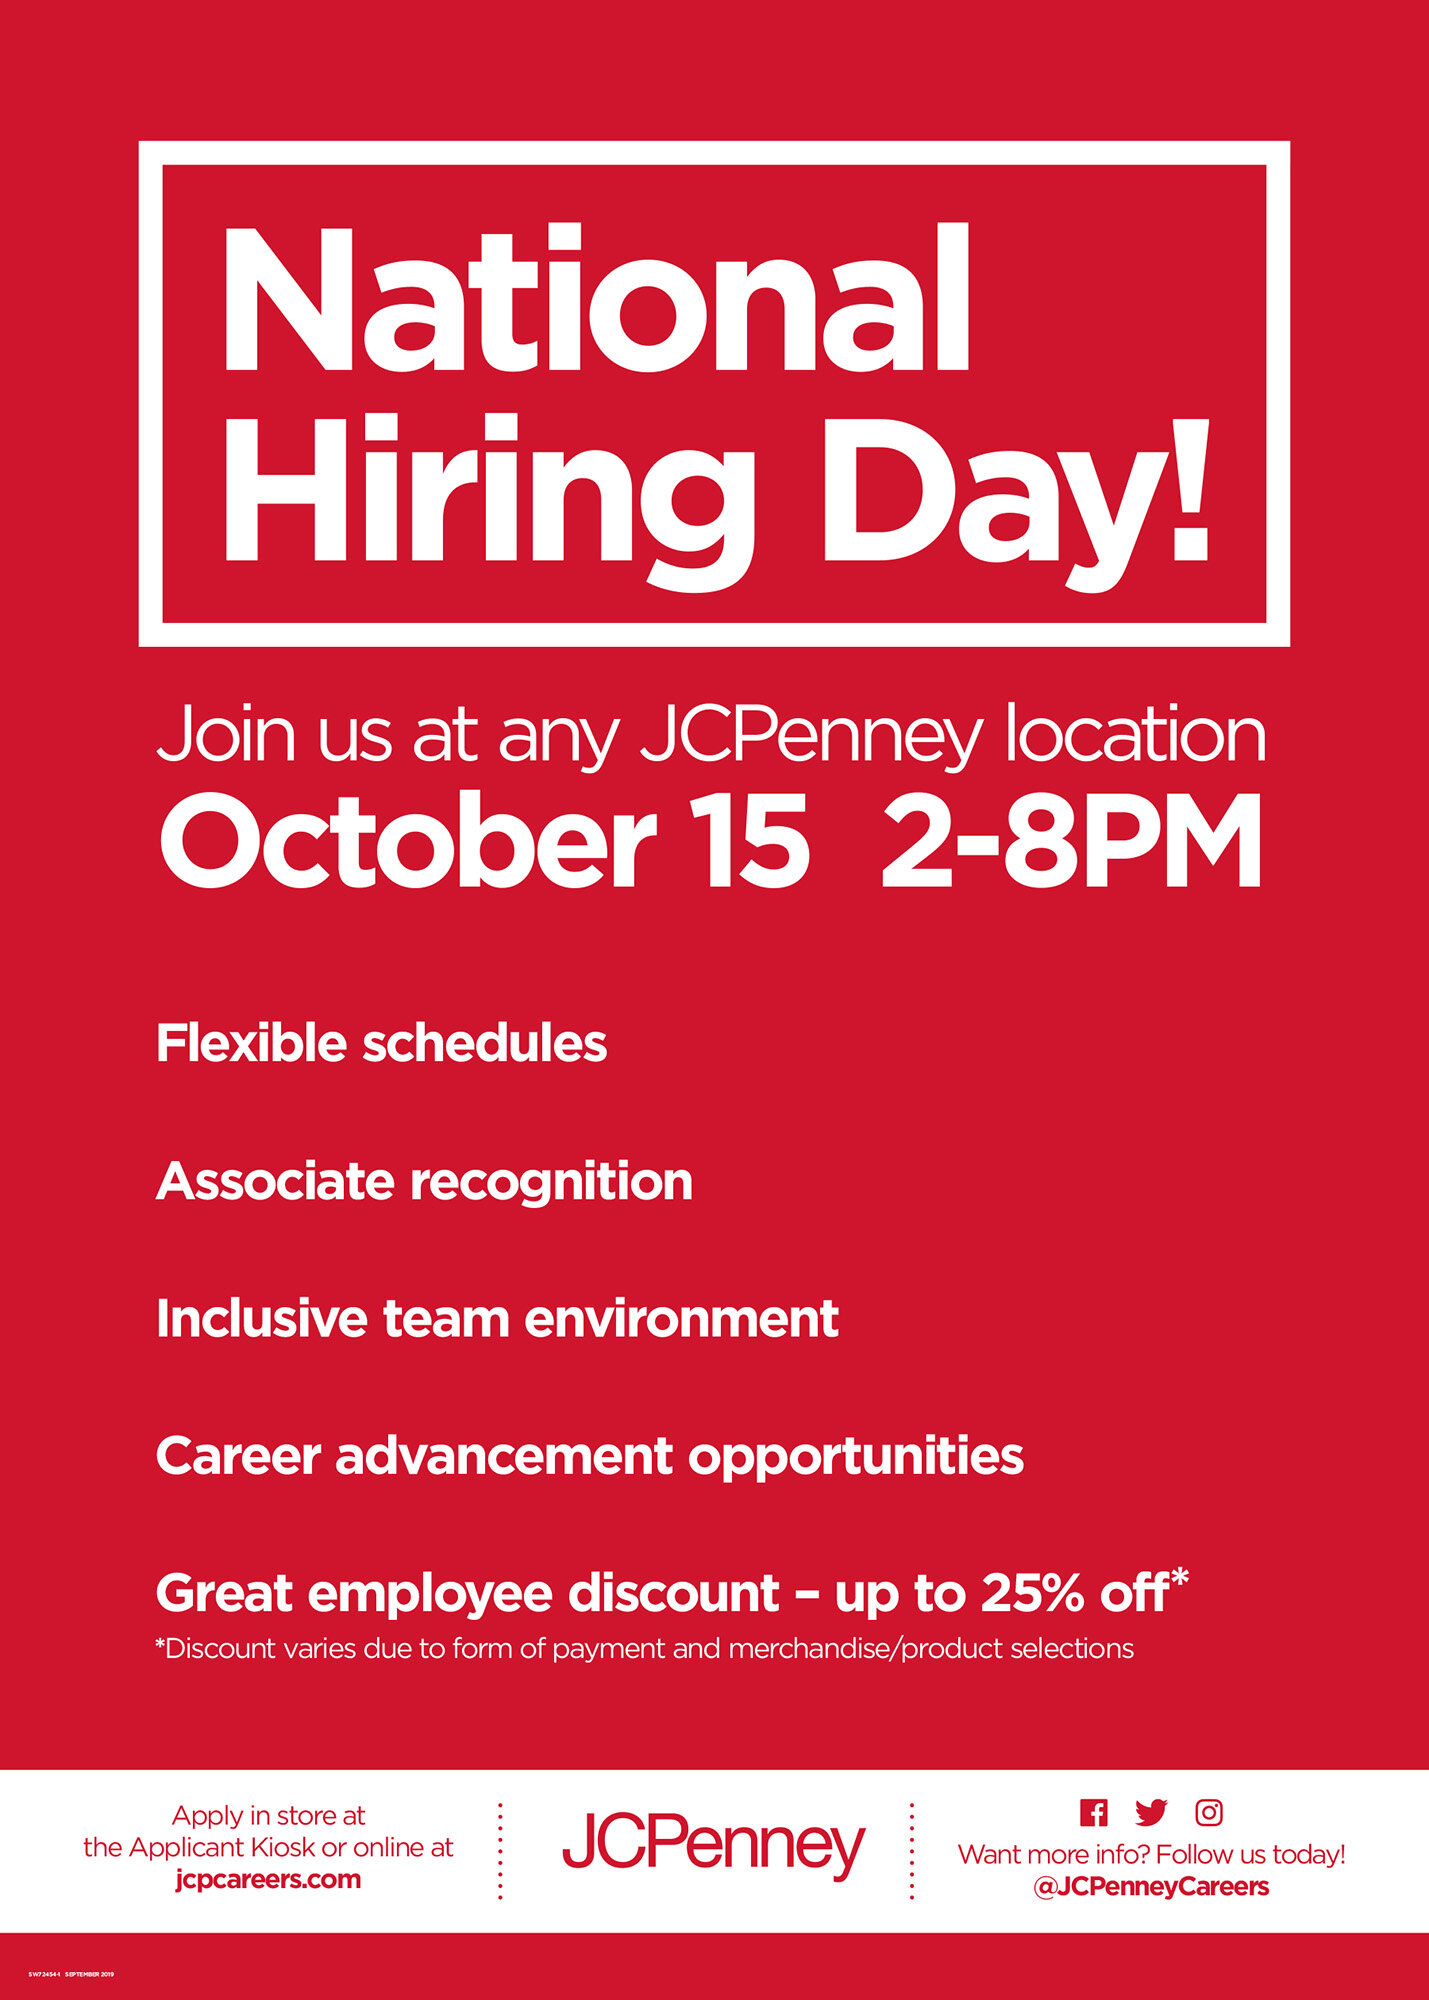 JCP_National Hiring Day-1.jpg